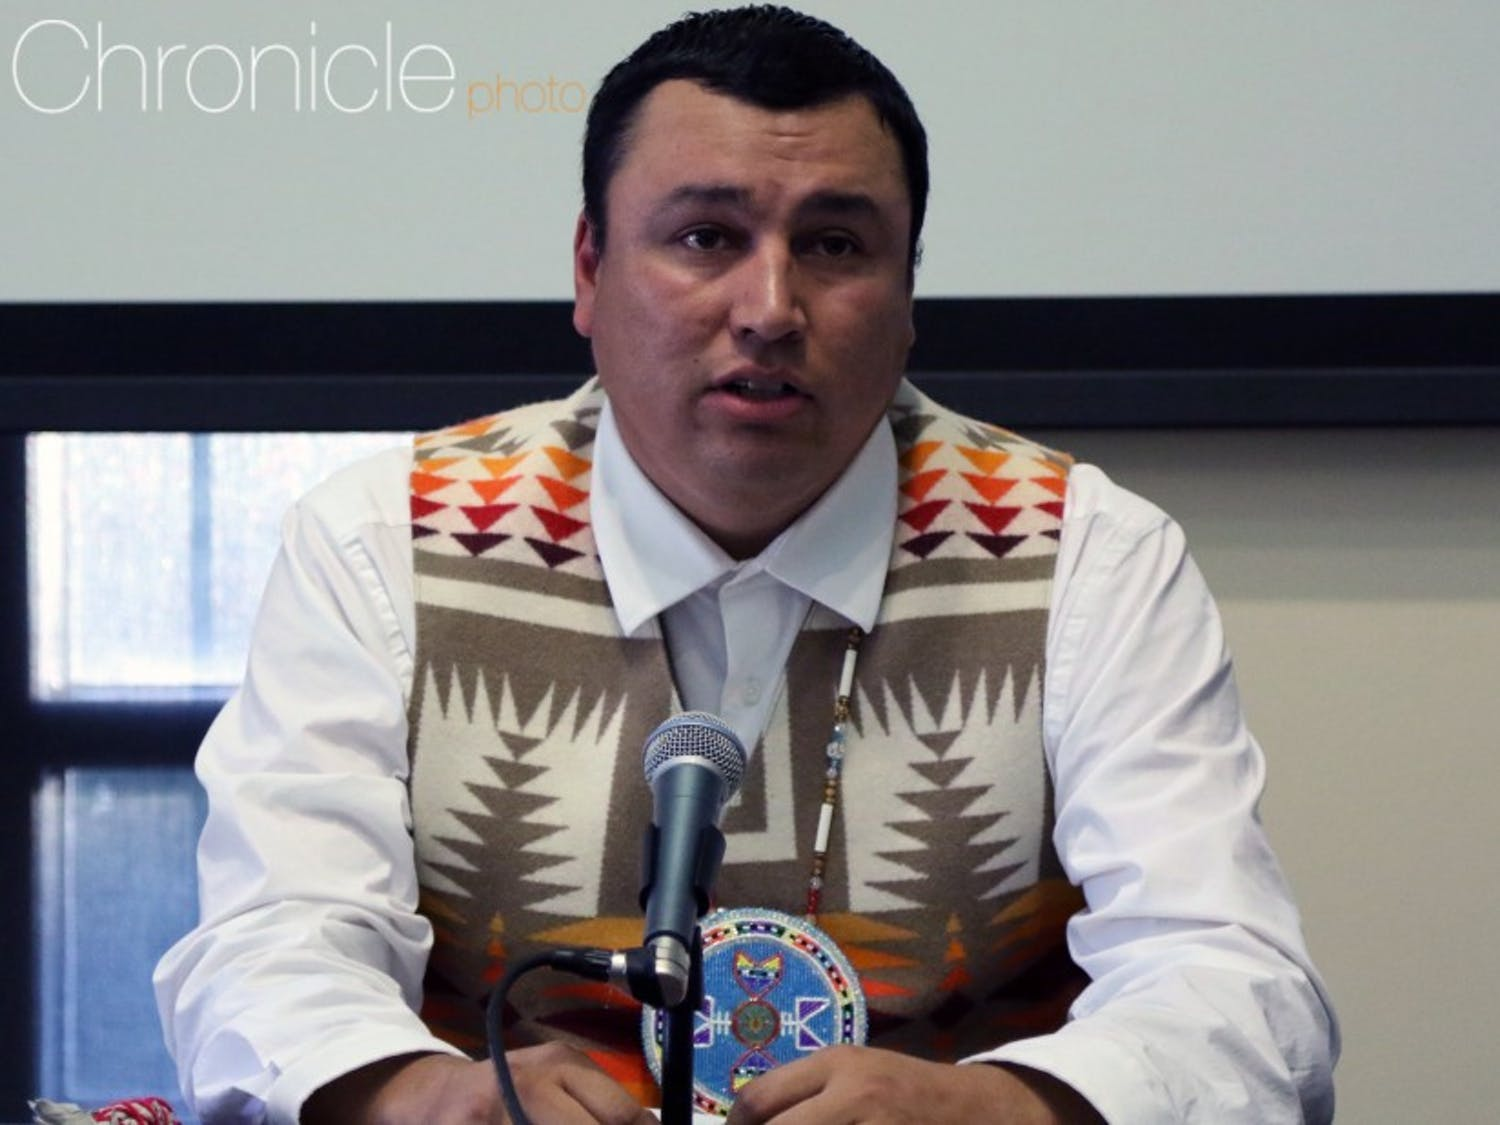 The Sioux council members noted that the pipeline could pollute water resources.